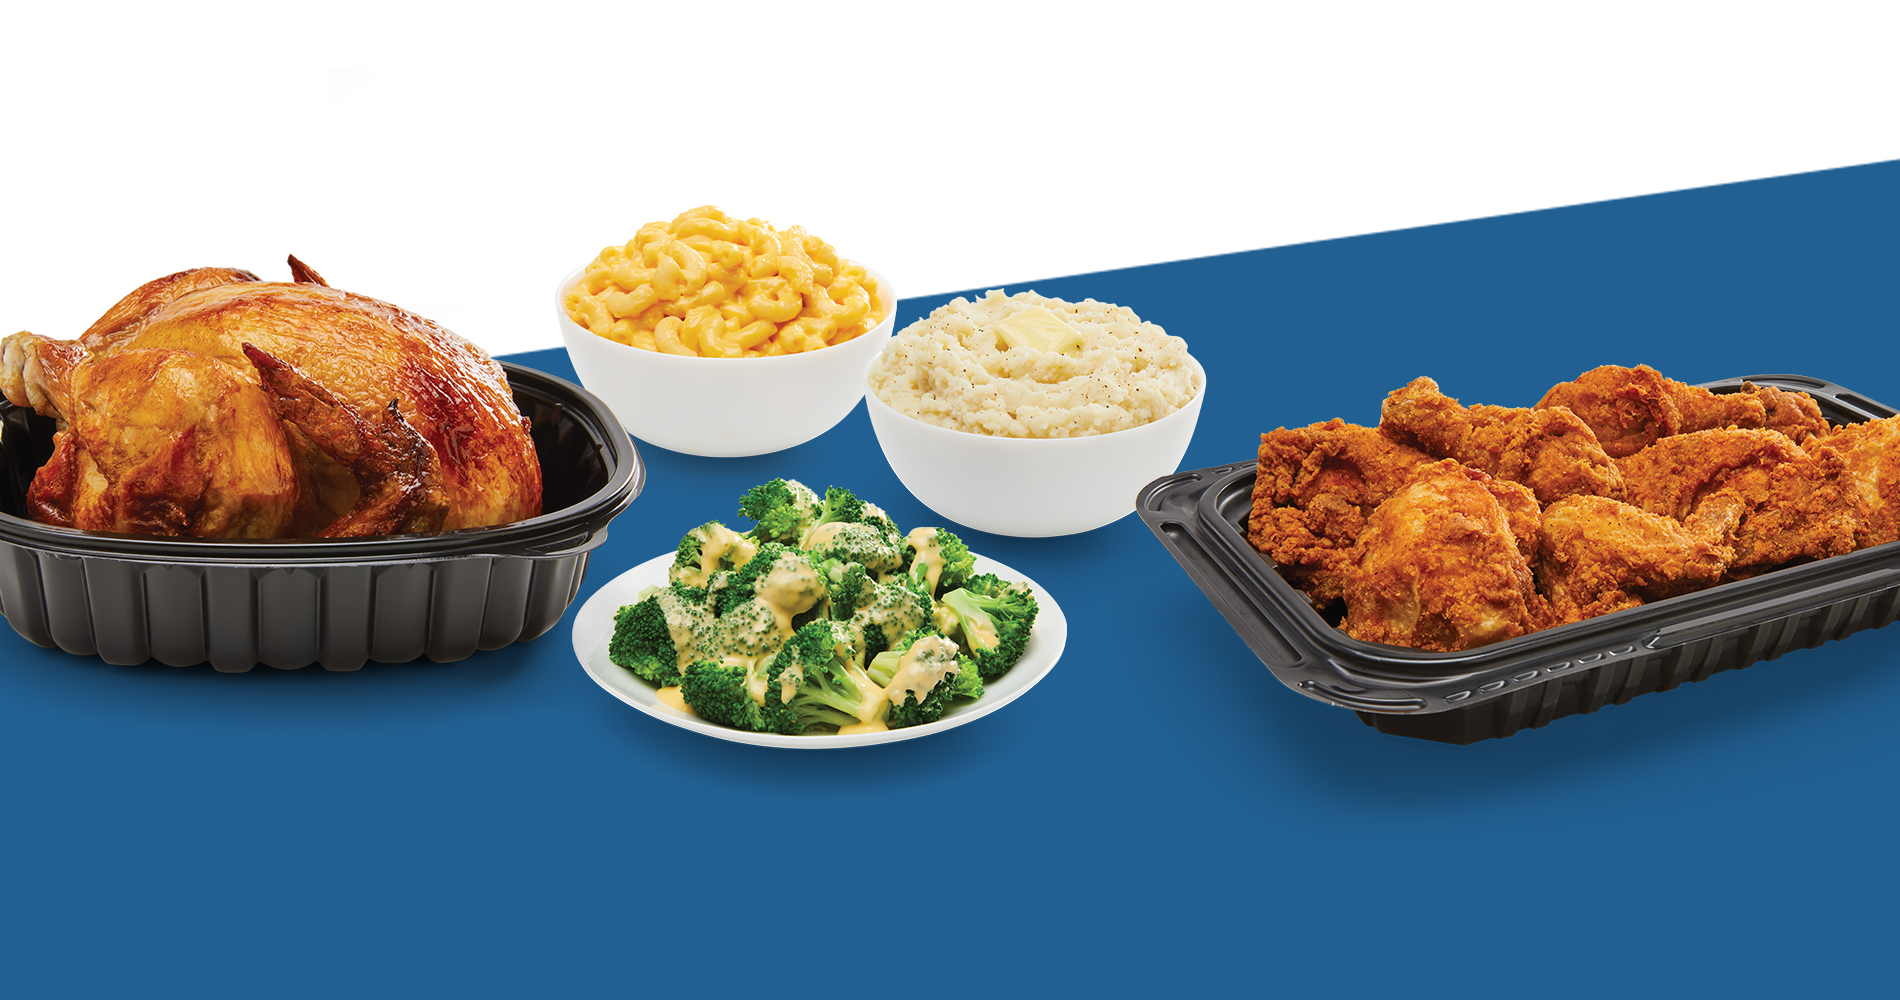 rotisserie chicken, mac and cheese, broccoli with cheese sauce, mashed potoatoes, 8-piece fried chicken